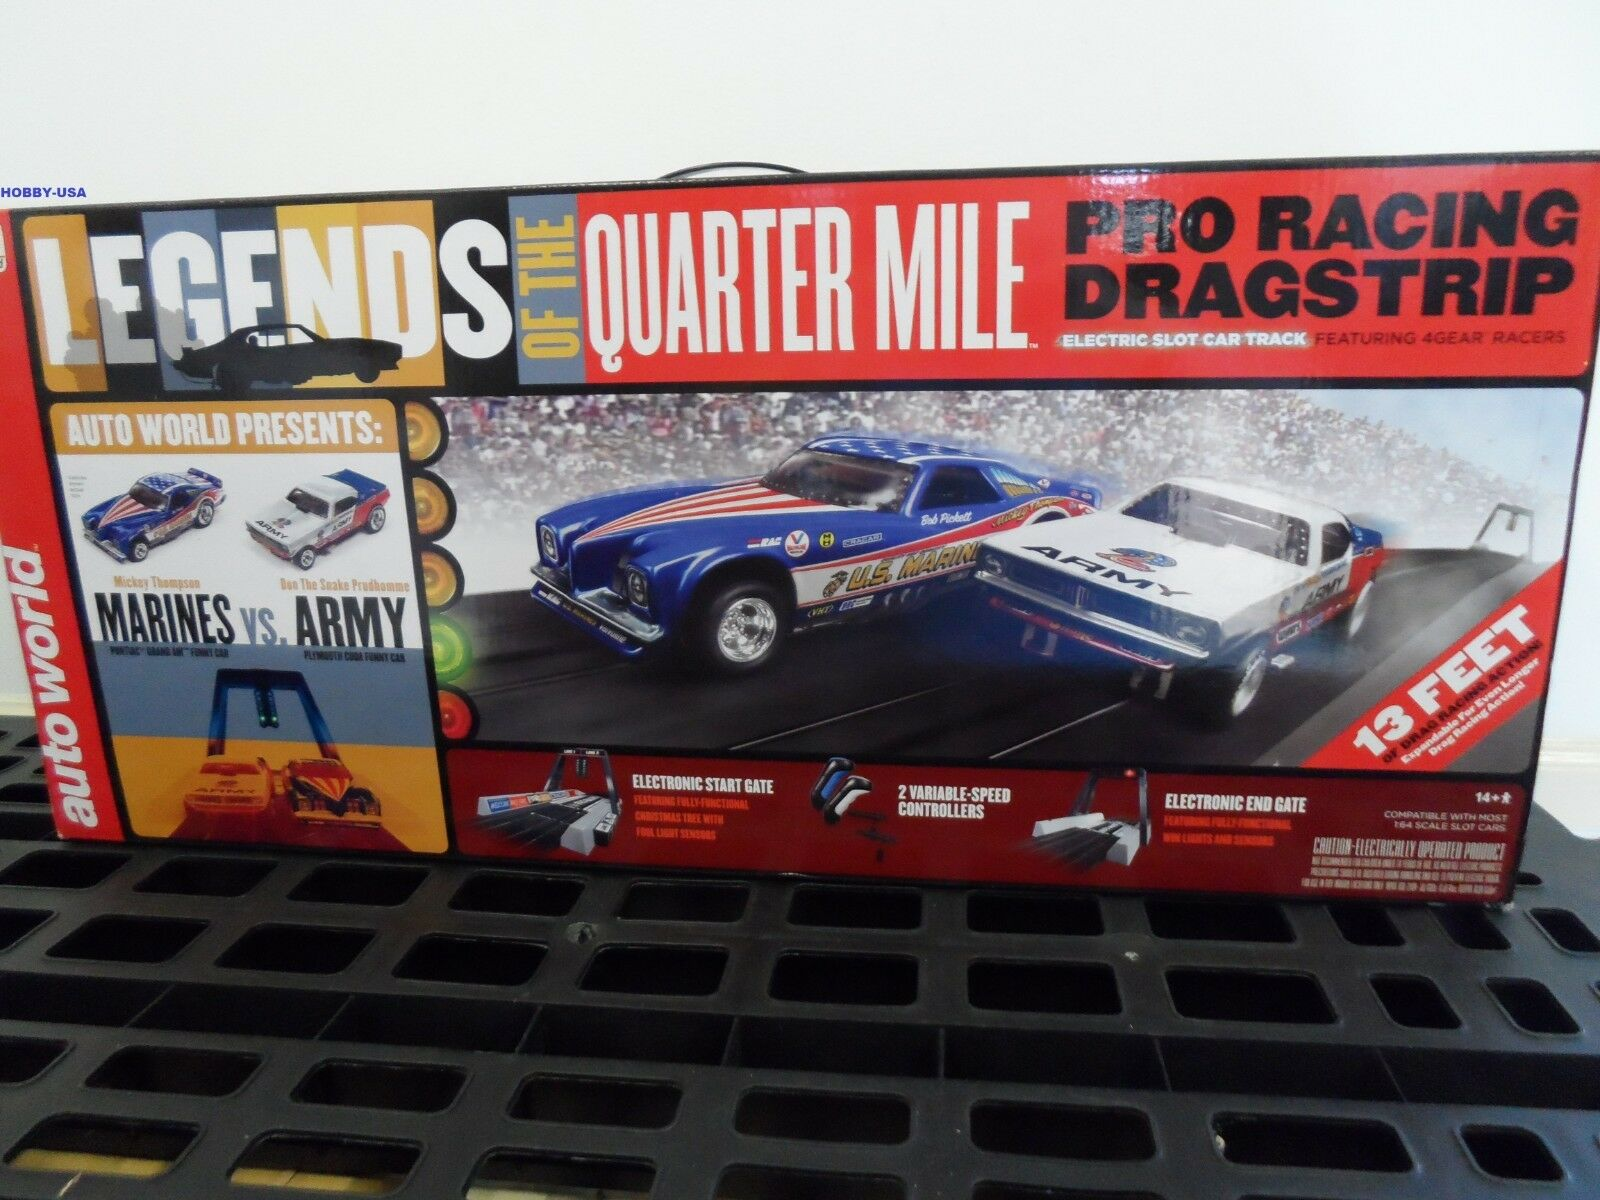 AUTO WORLD Legends Of The Quarter Mile Pro Racing Dragstrip